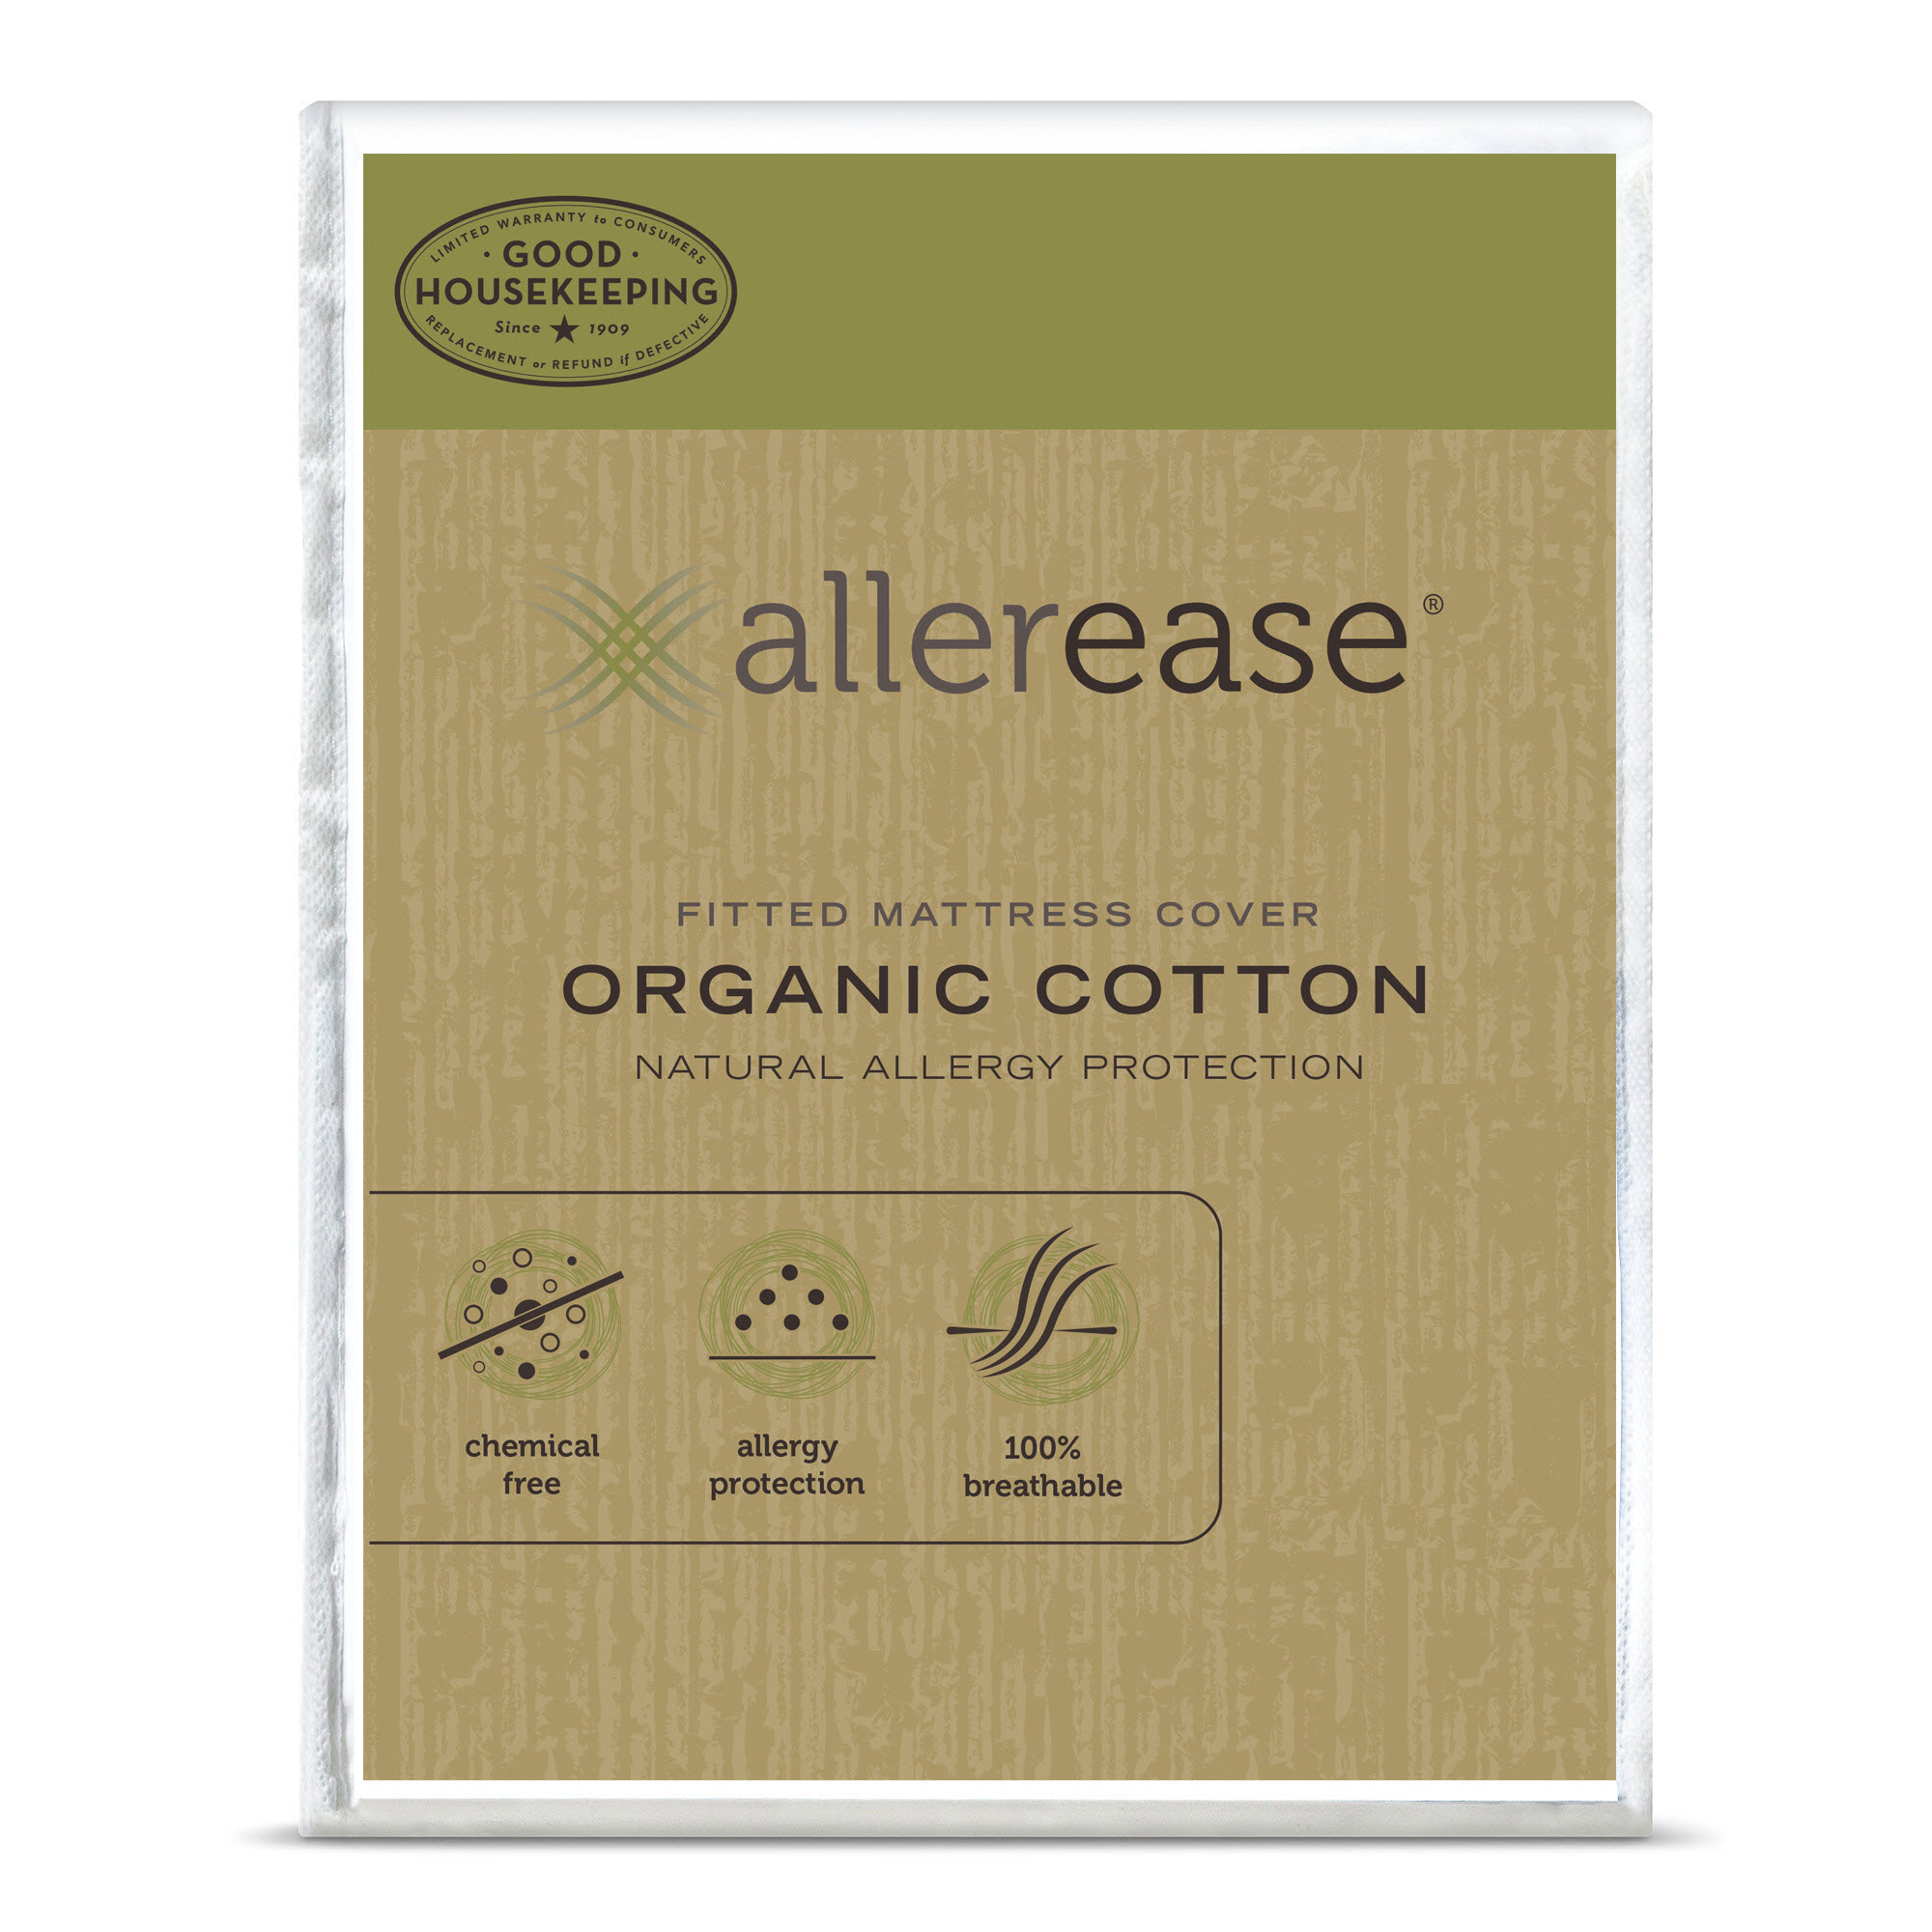 AllerEase Organic Cotton Cover Allergy Protection Mattress Cover, Twin